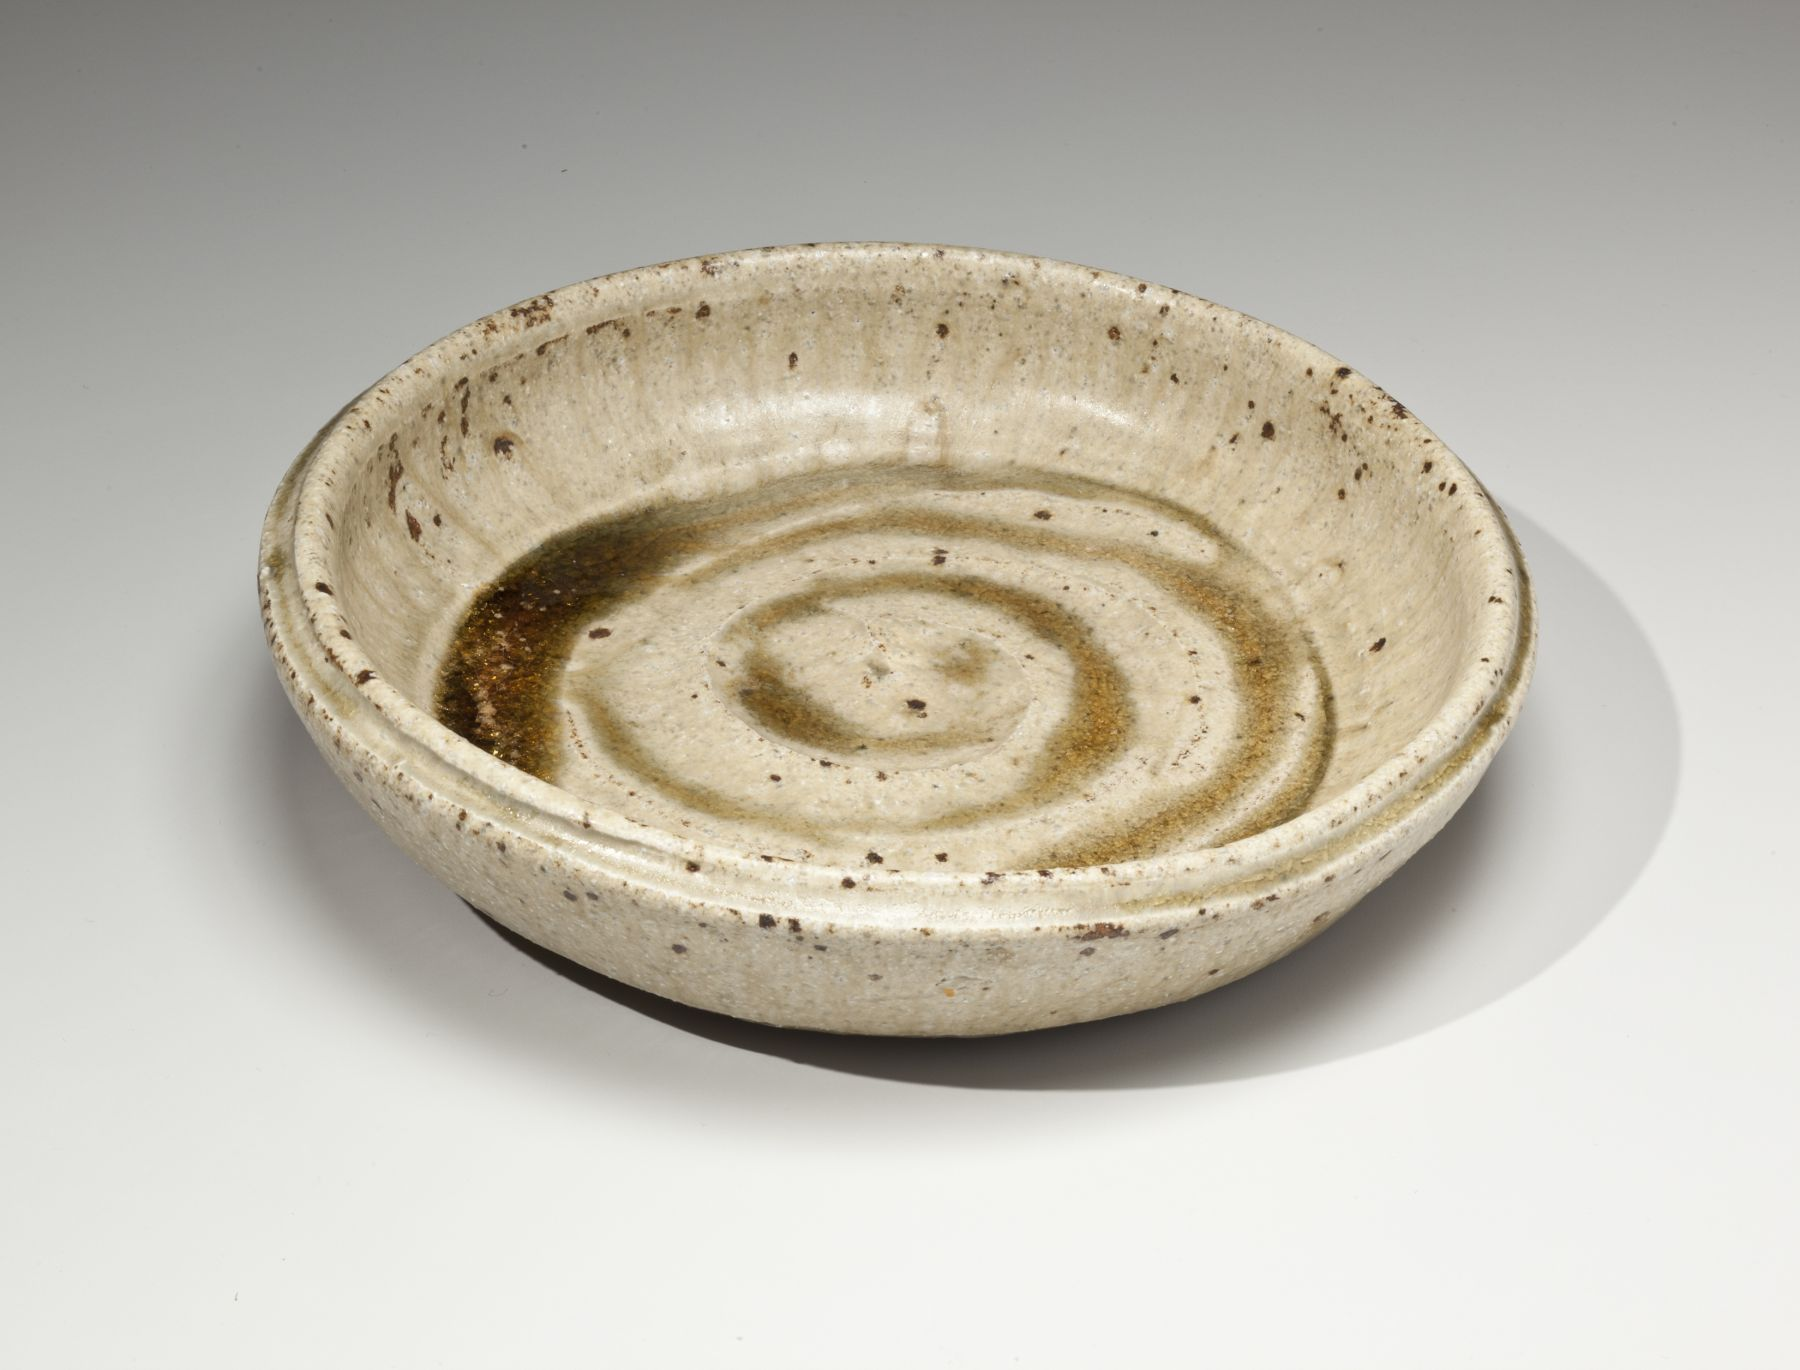 Kitaōji Rosanjin (1883-1959), Iga-glazed, round, cream colored vessel with natural green ash-glaze pooling in the central concentric rings